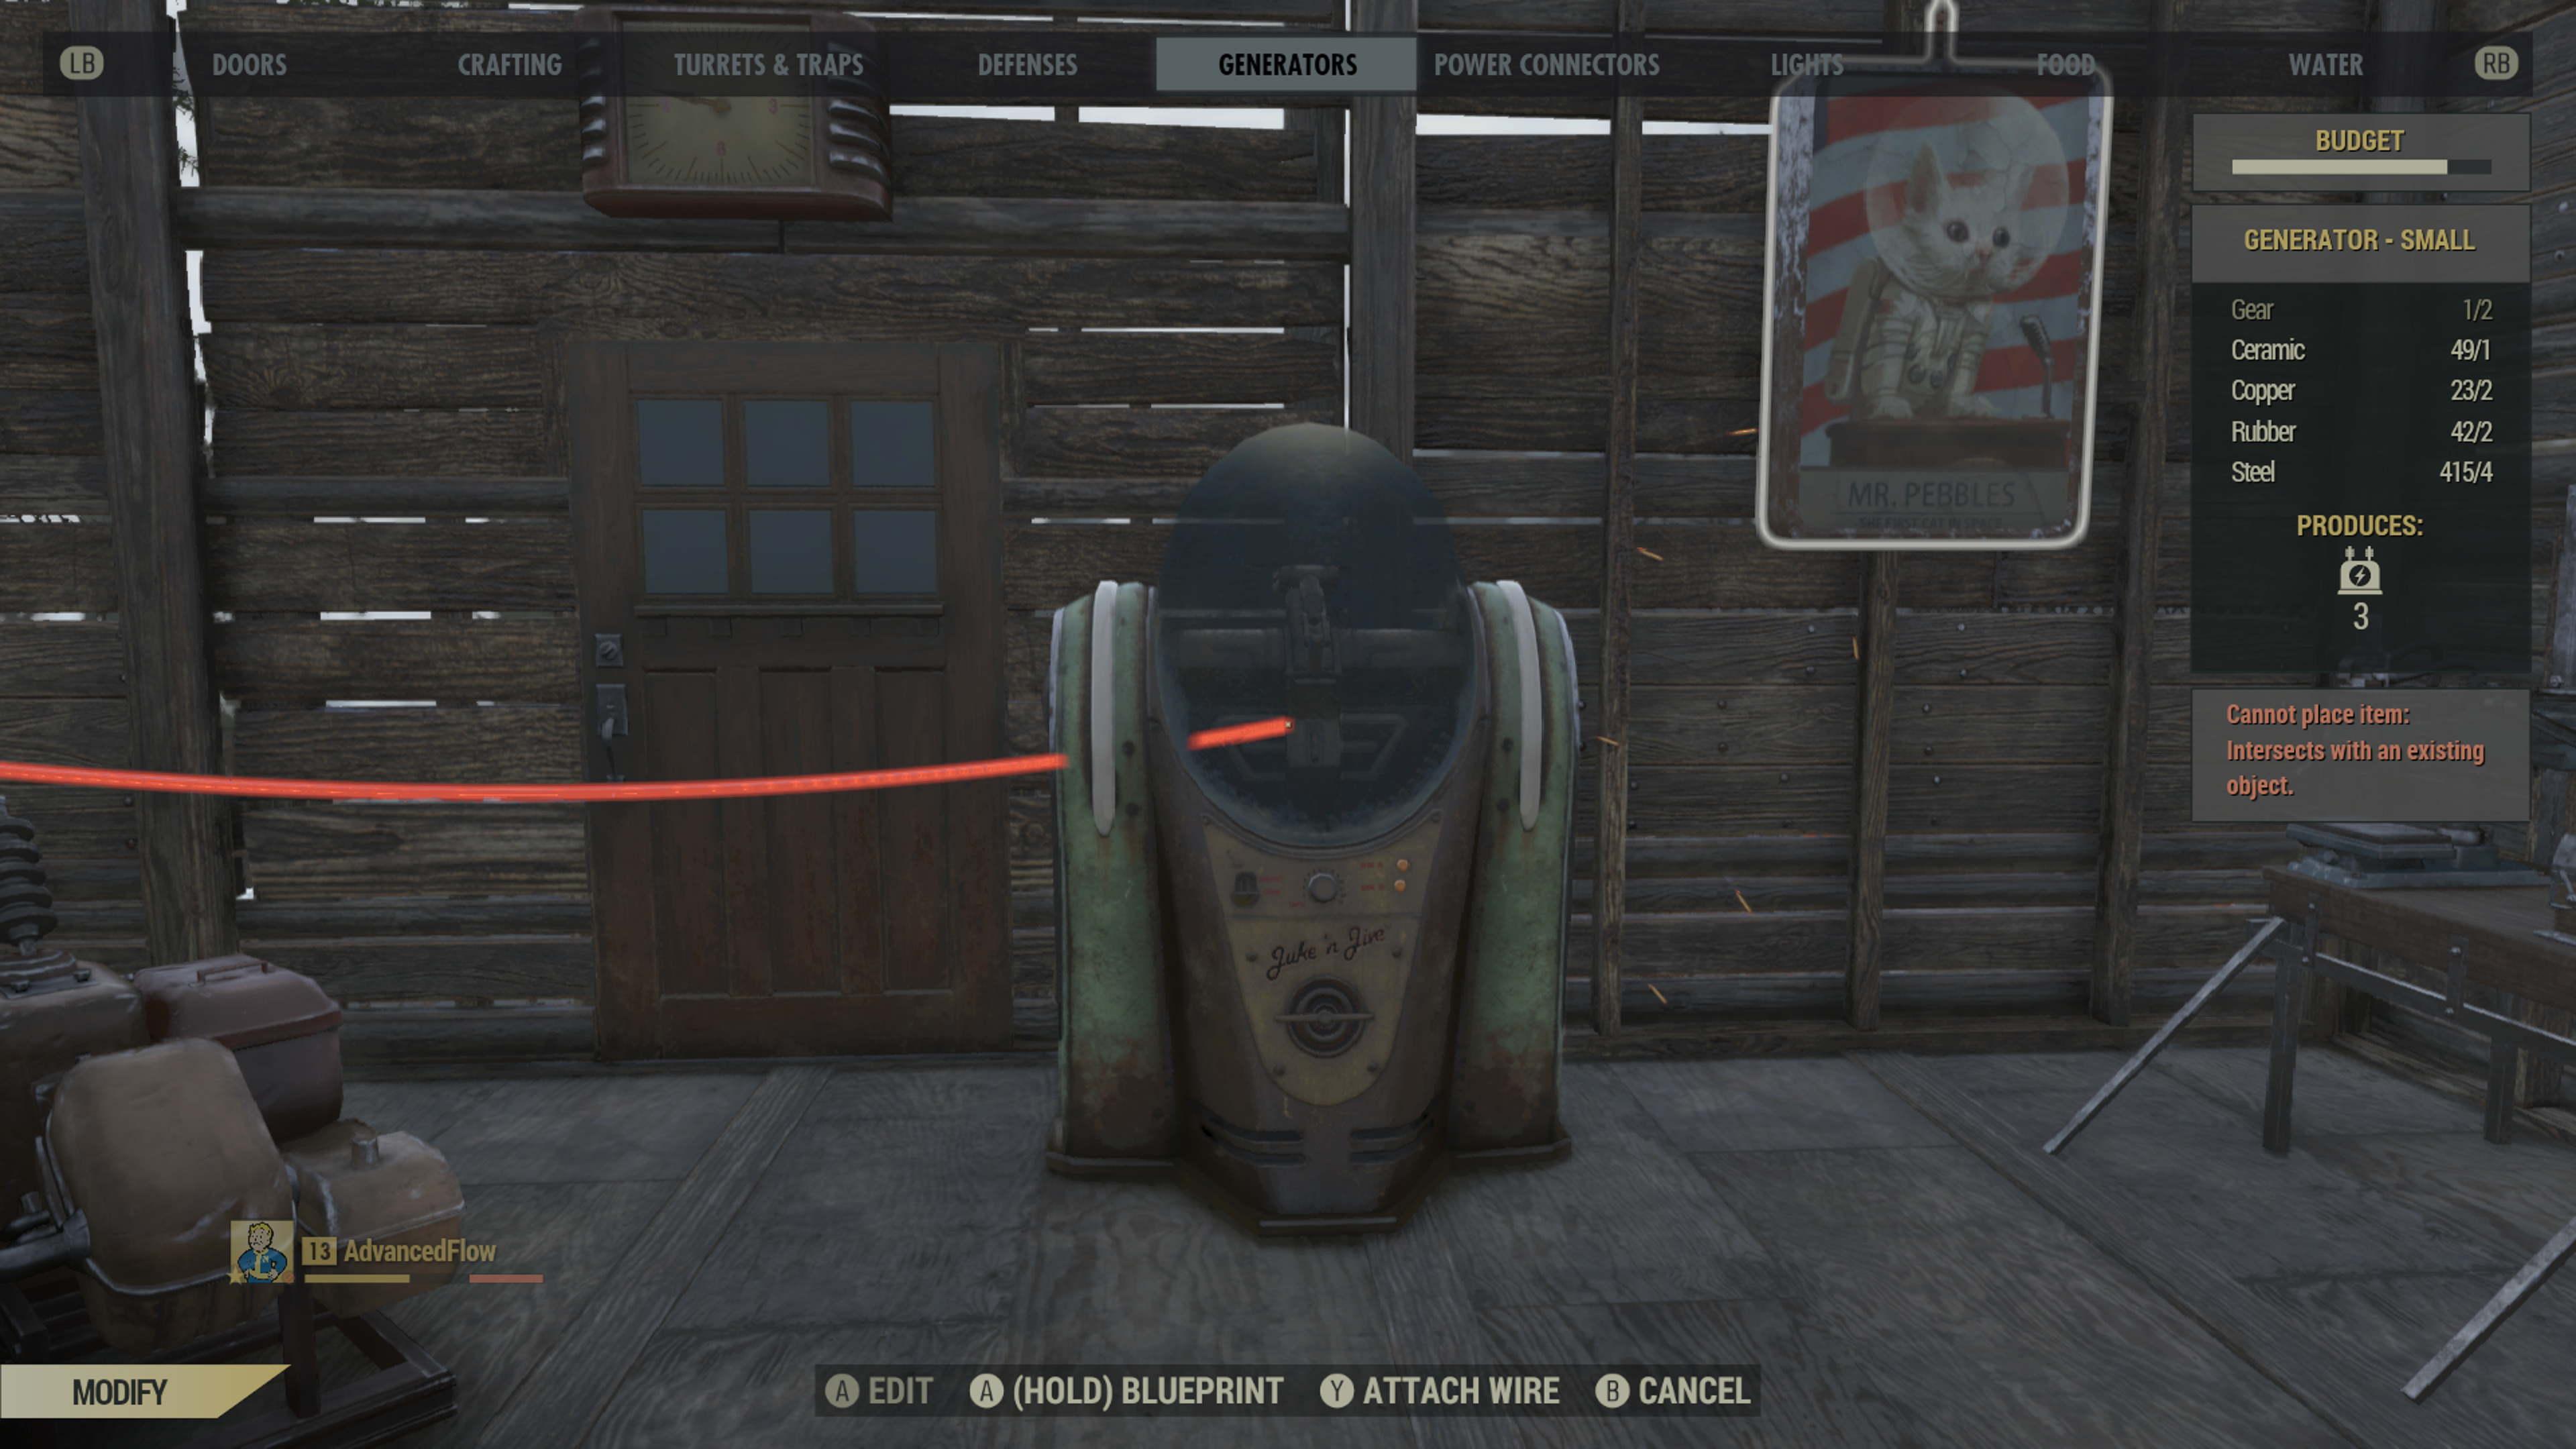 Fallout 76 How To Run Wires Through Walls: How do I power my jukebox lights and posters with lights? : fo76rh:reddit.com,Design